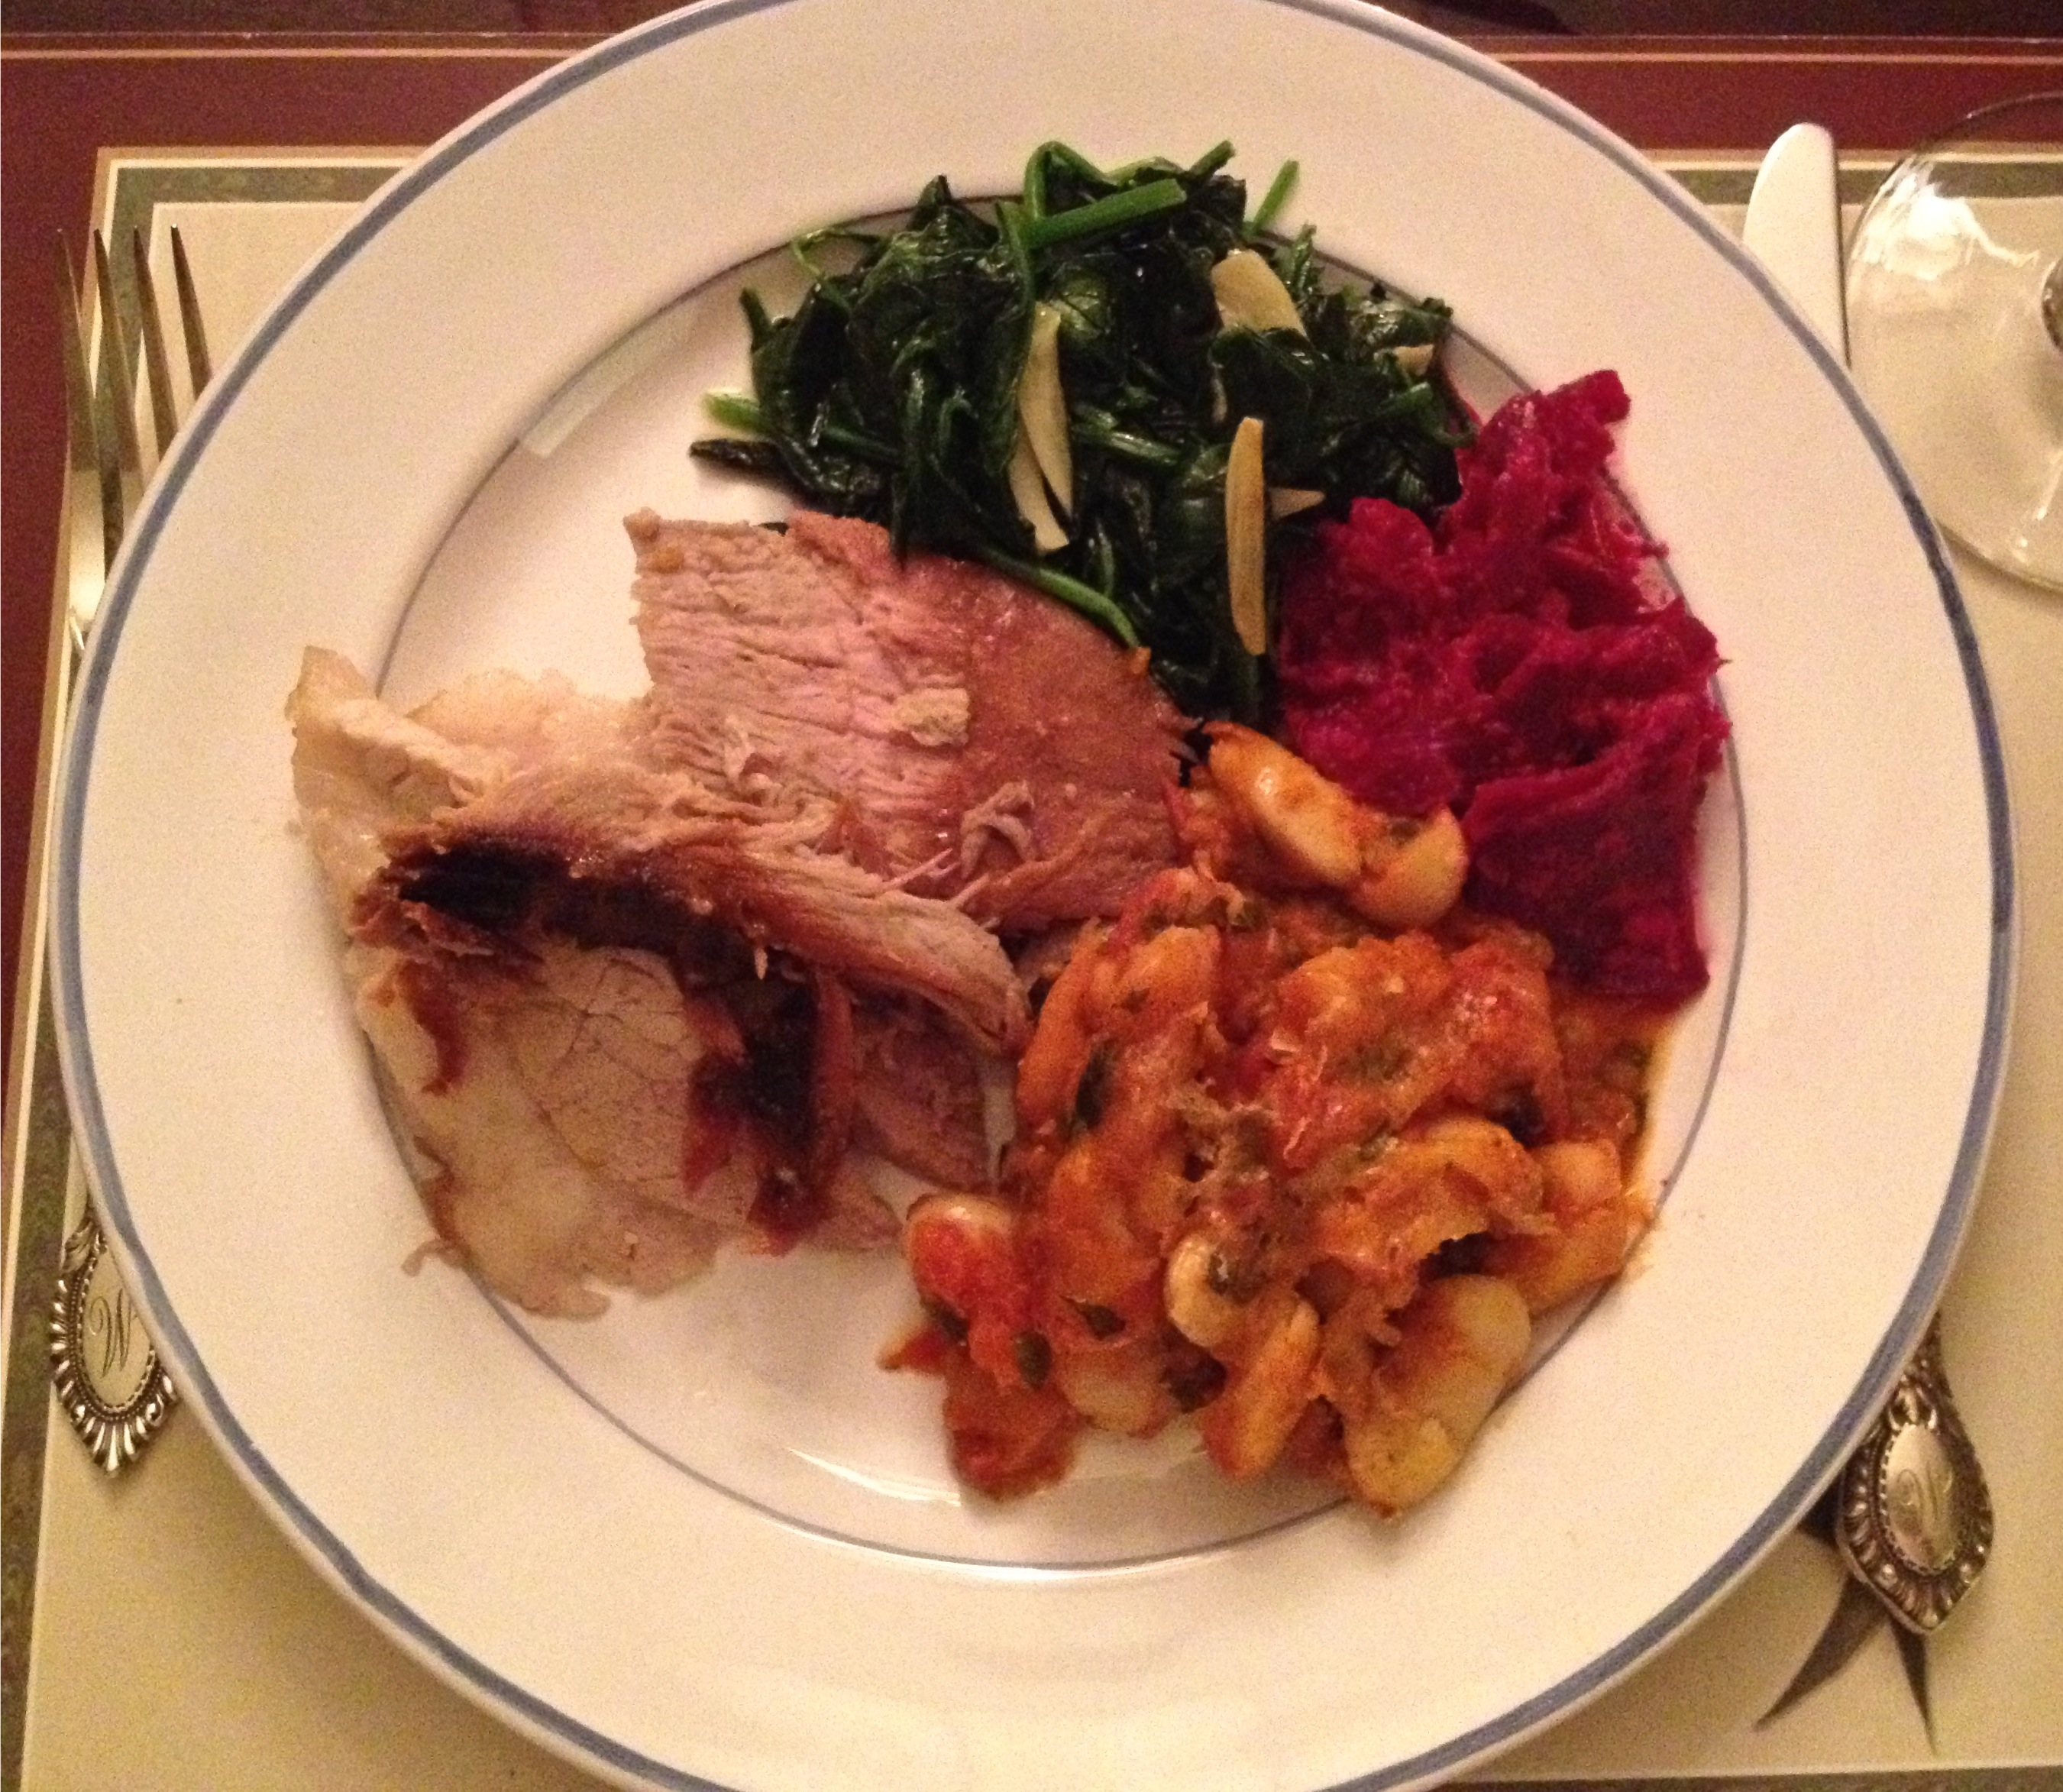 Easter dinner plate with baked ham beans beets and sautéed spinach